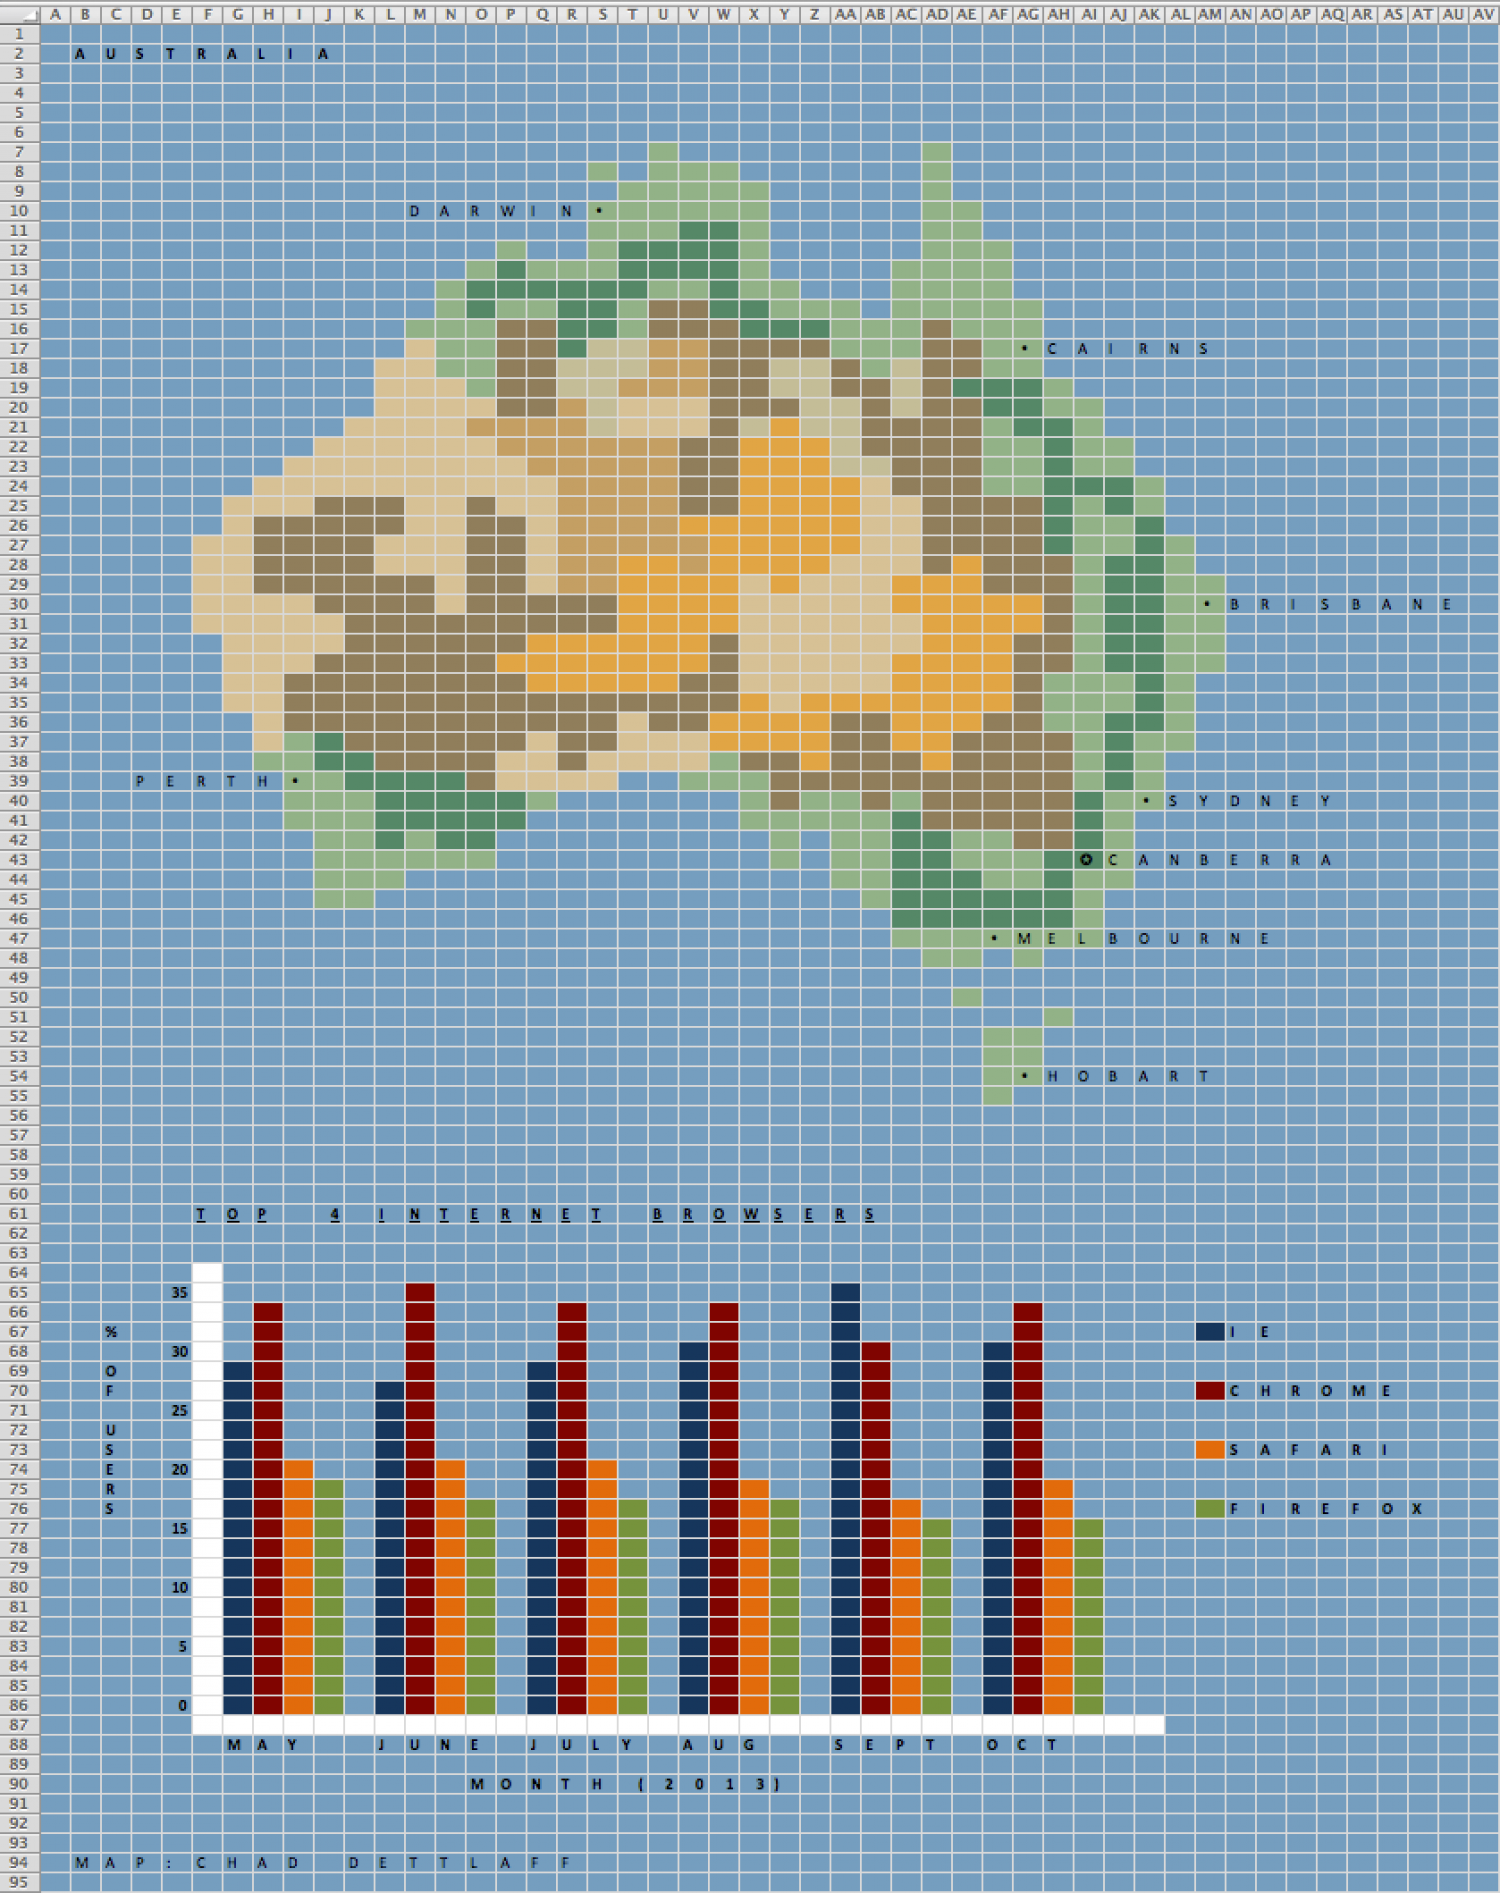 Australia Excel Bar Chart Infographic